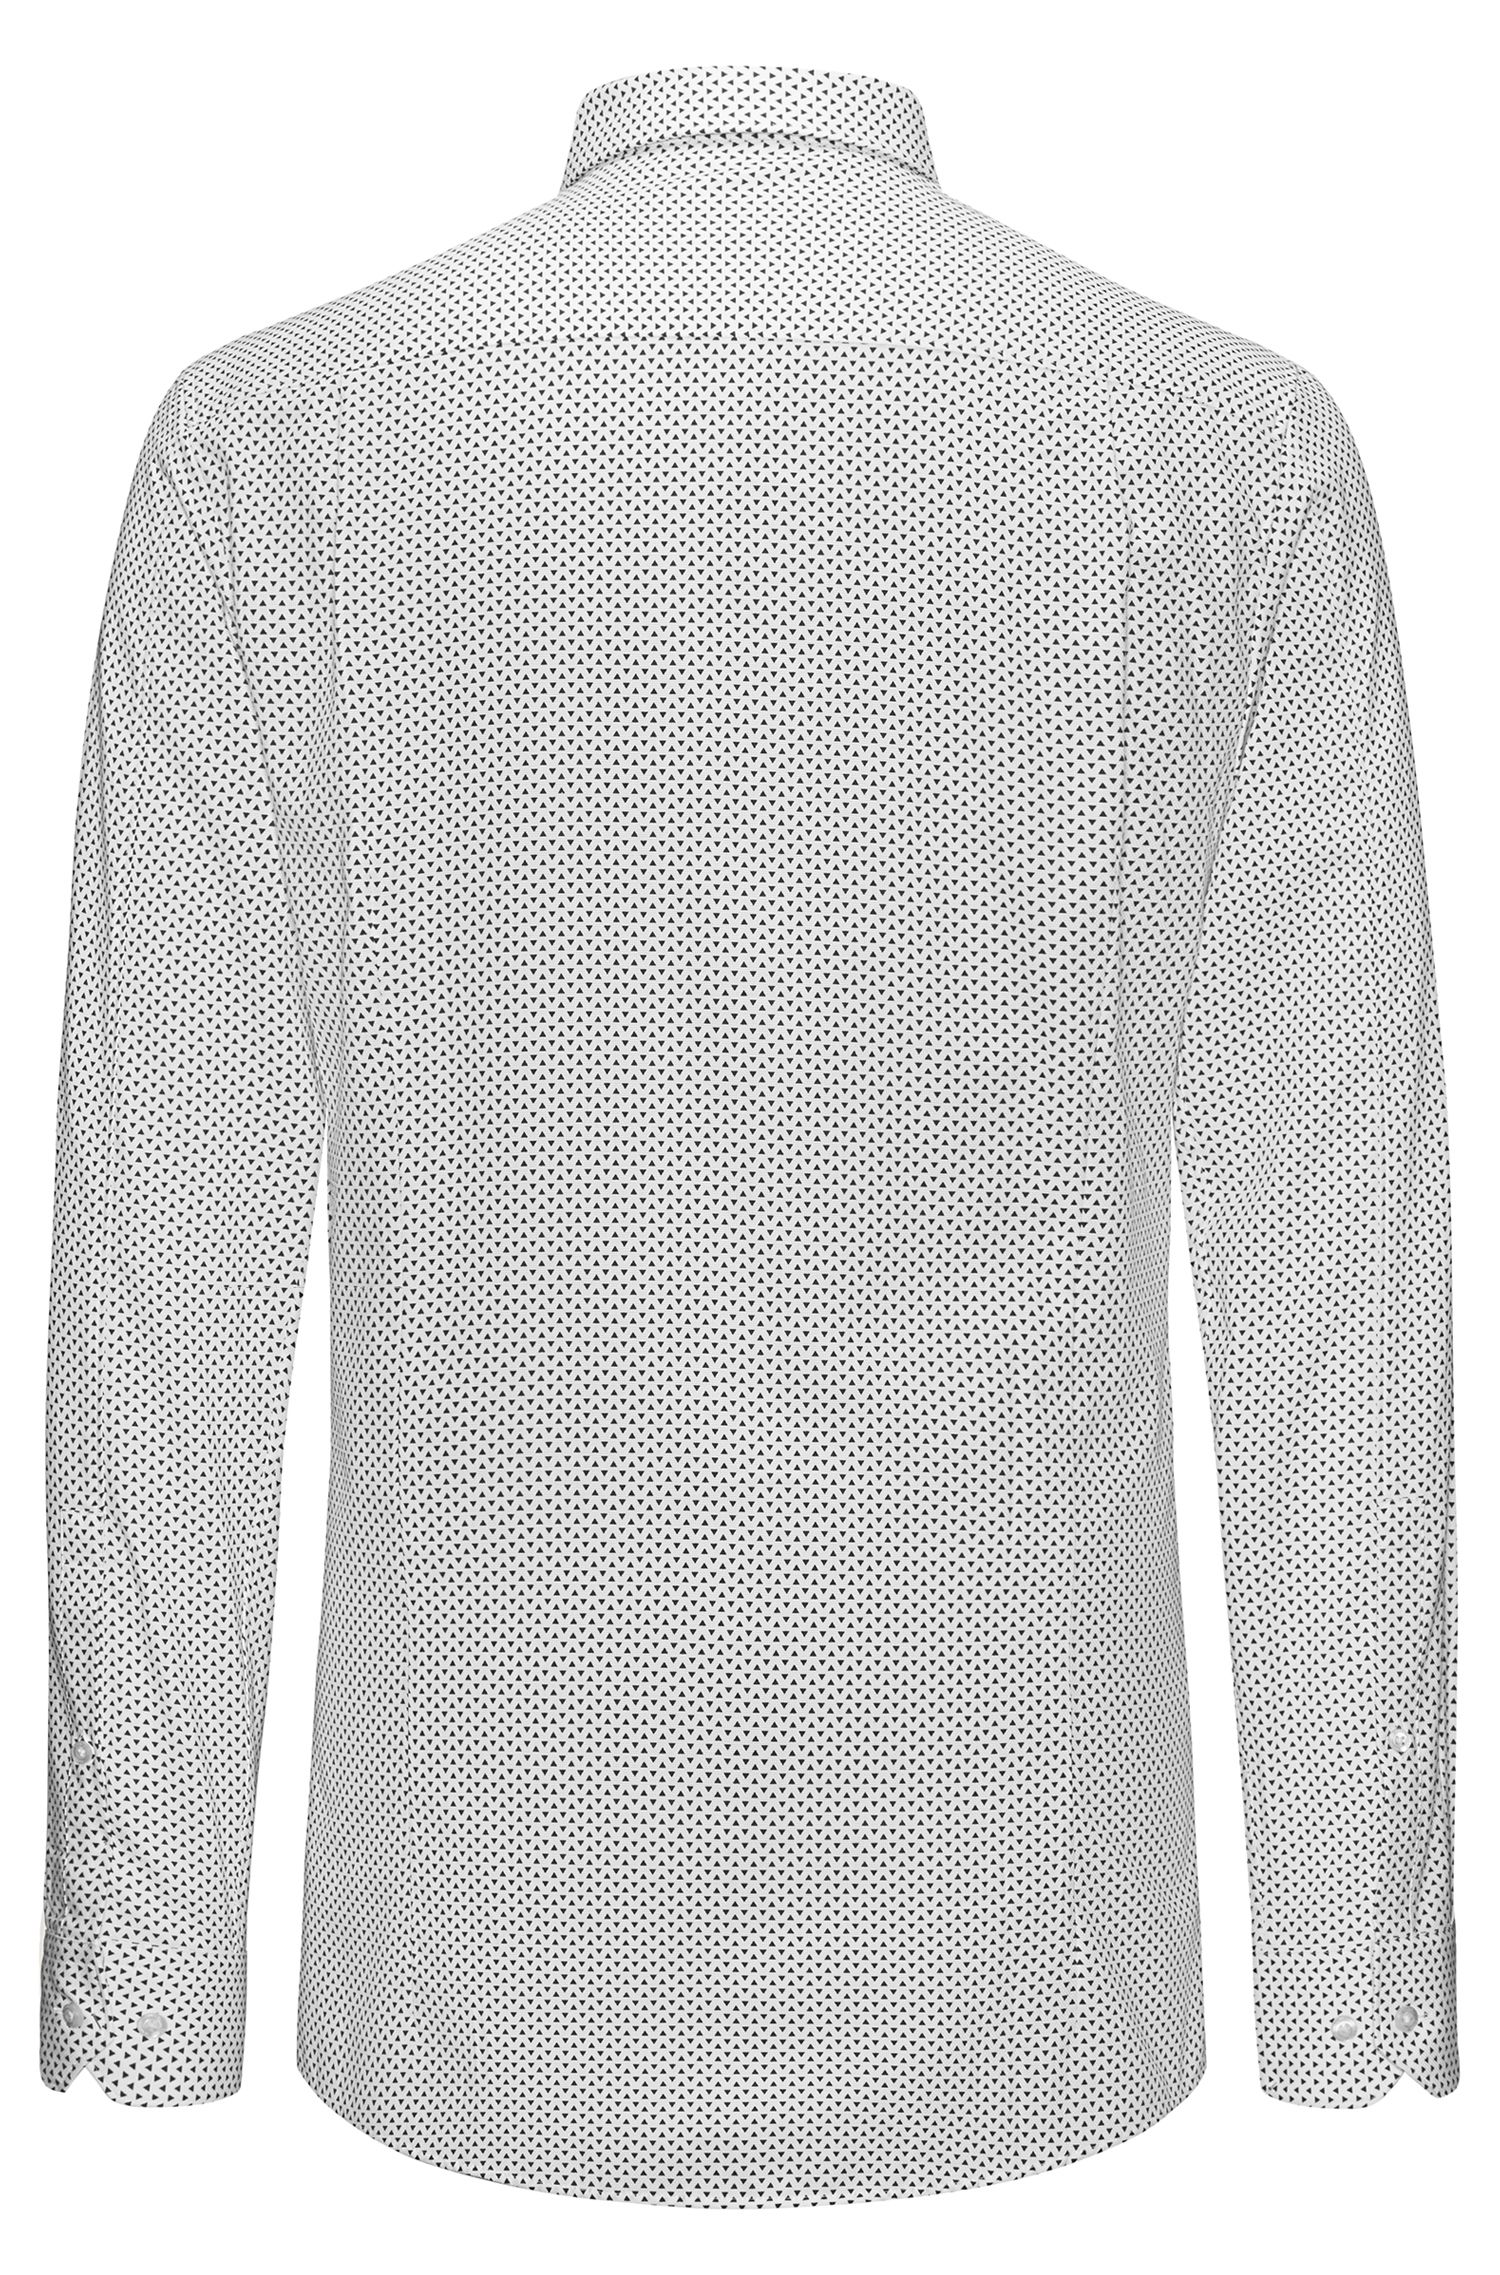 Triangle-Print Cotton Sport Shirt, Extra Slim Fit | Elisha, Open White